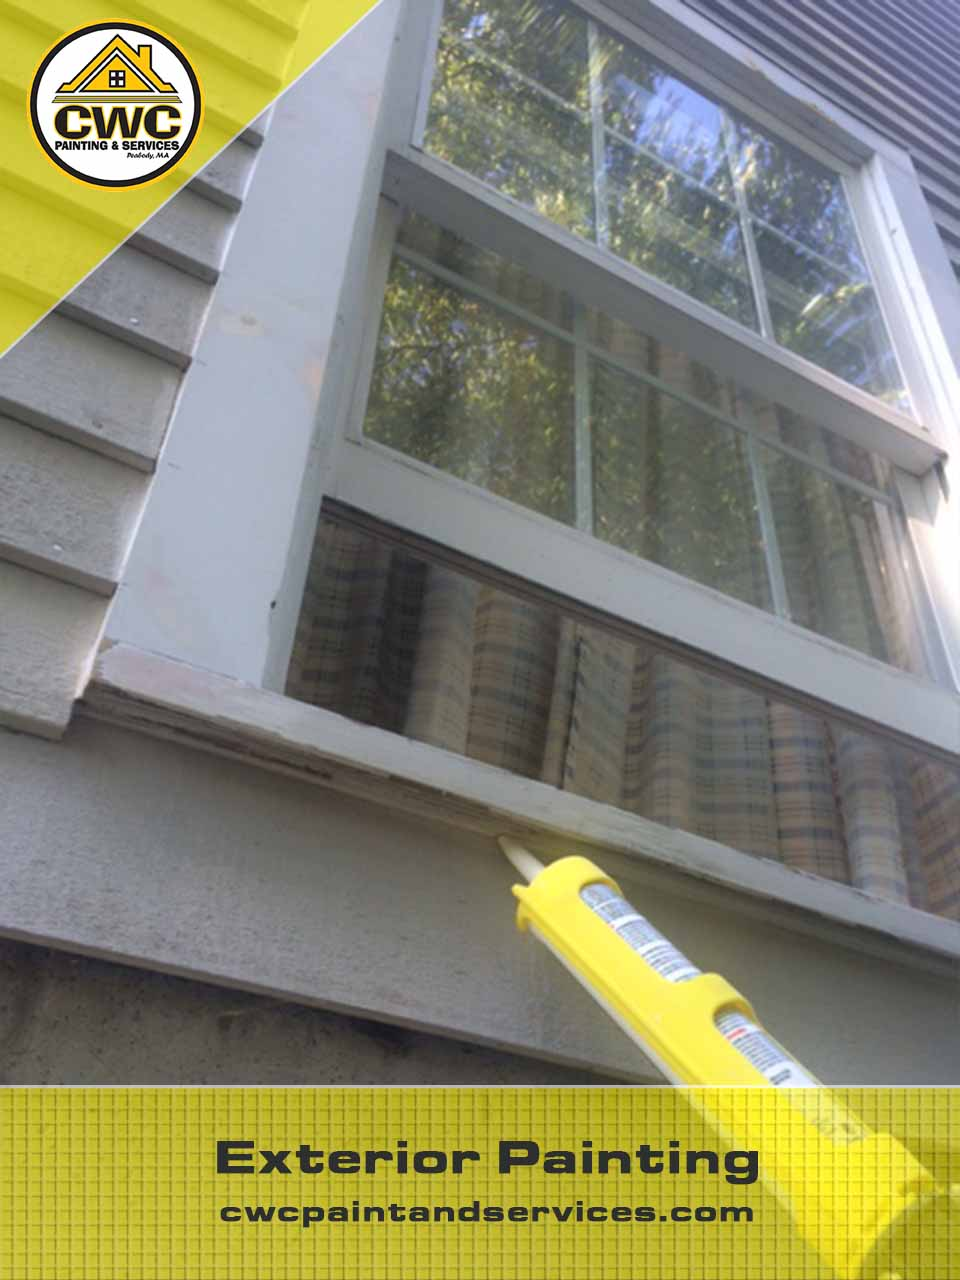 Exterior Painting Cwc Painting And Services